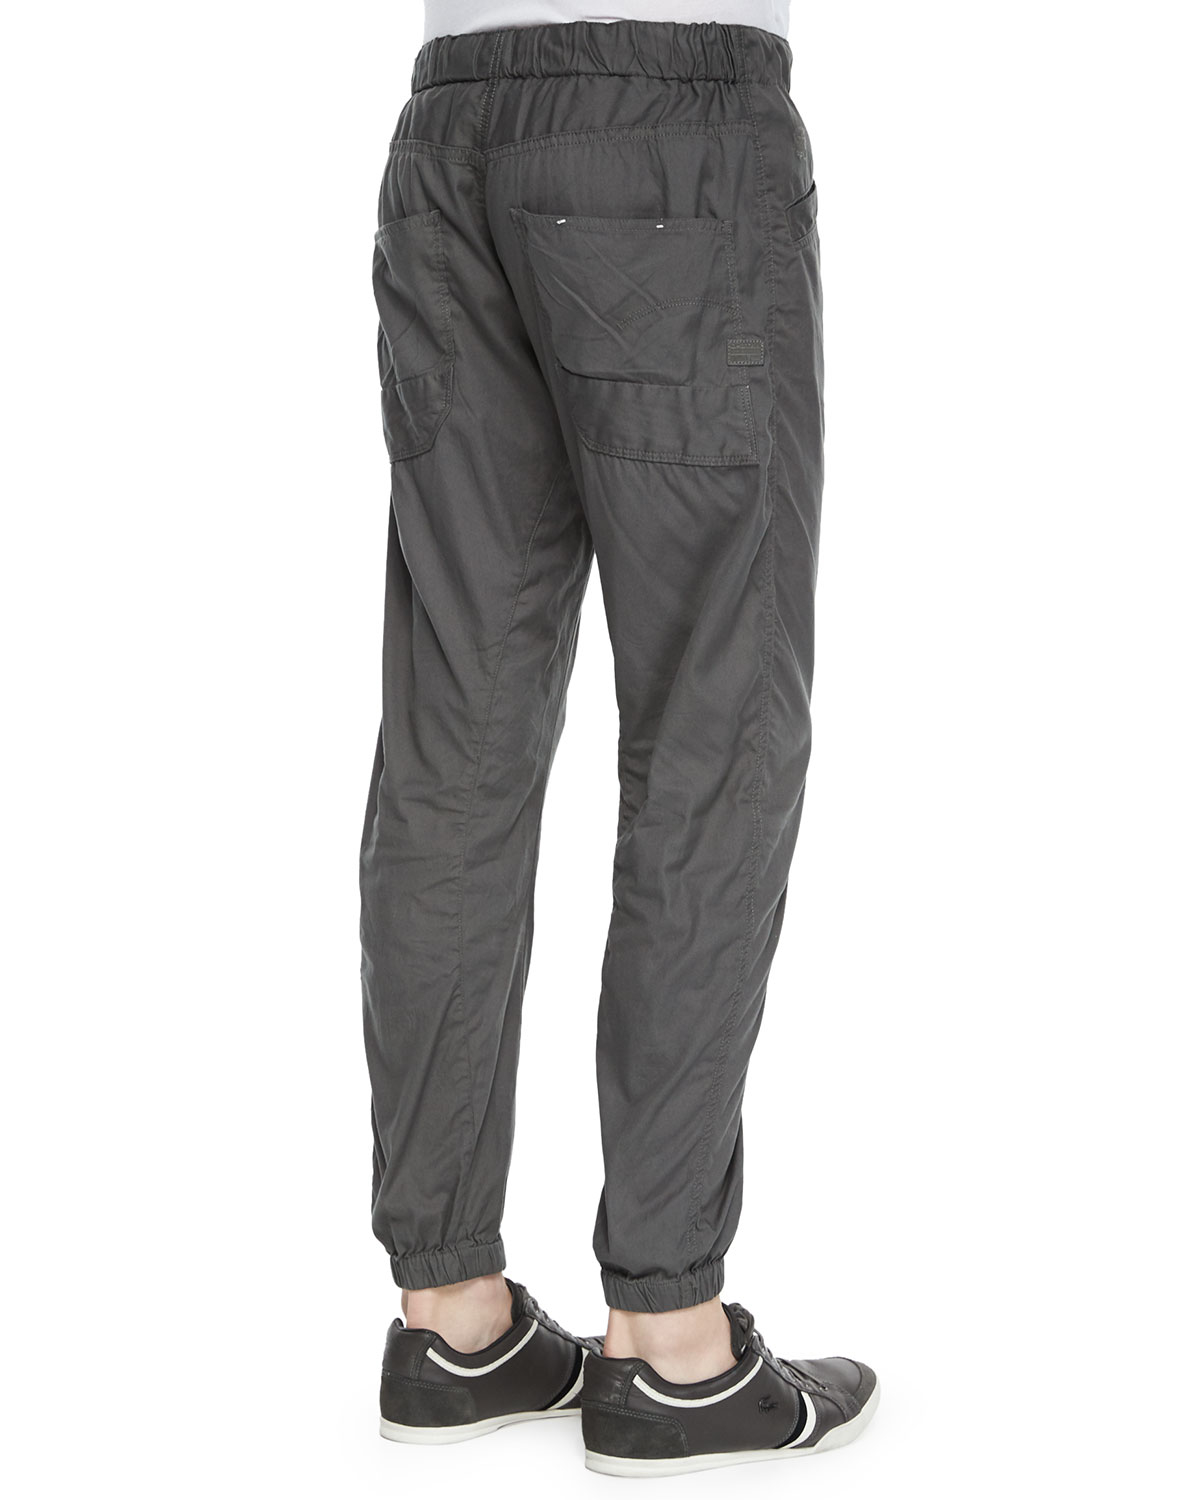 davin men Find davin slide and more at lucky brand shop now and receive free shipping  on orders over $75.